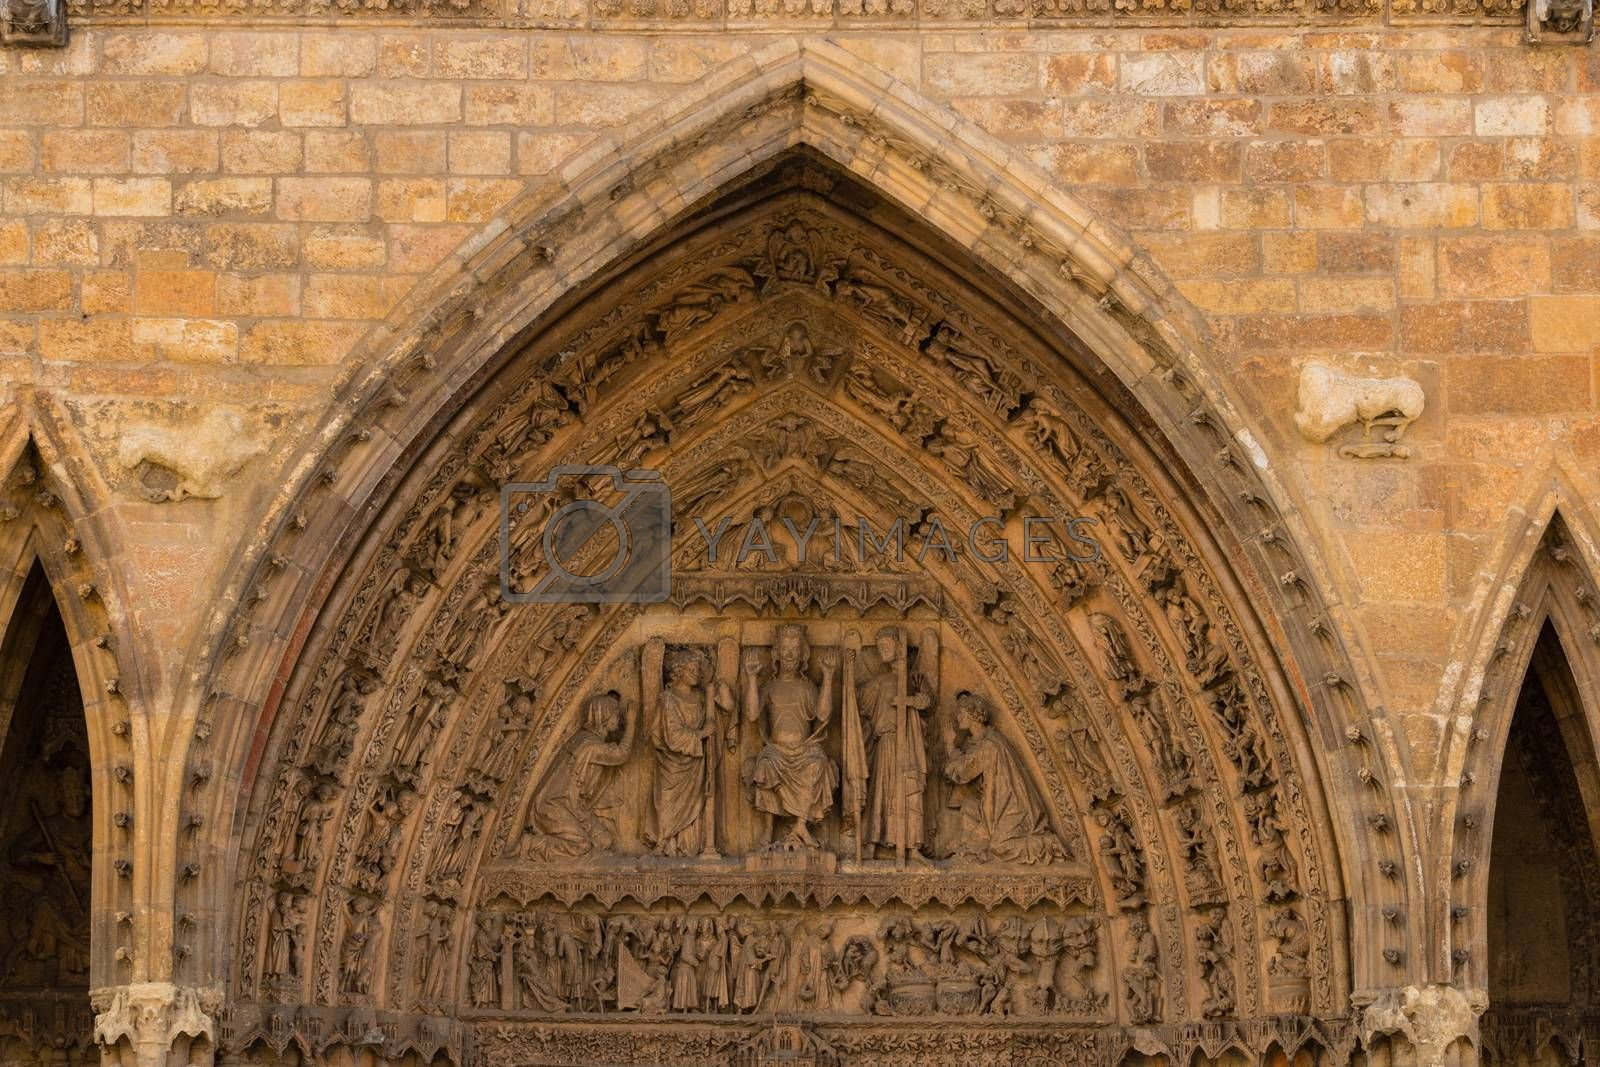 Tympanum and archivolts detail of the gothic main entrance door in the Cathedral of Leon , Spain